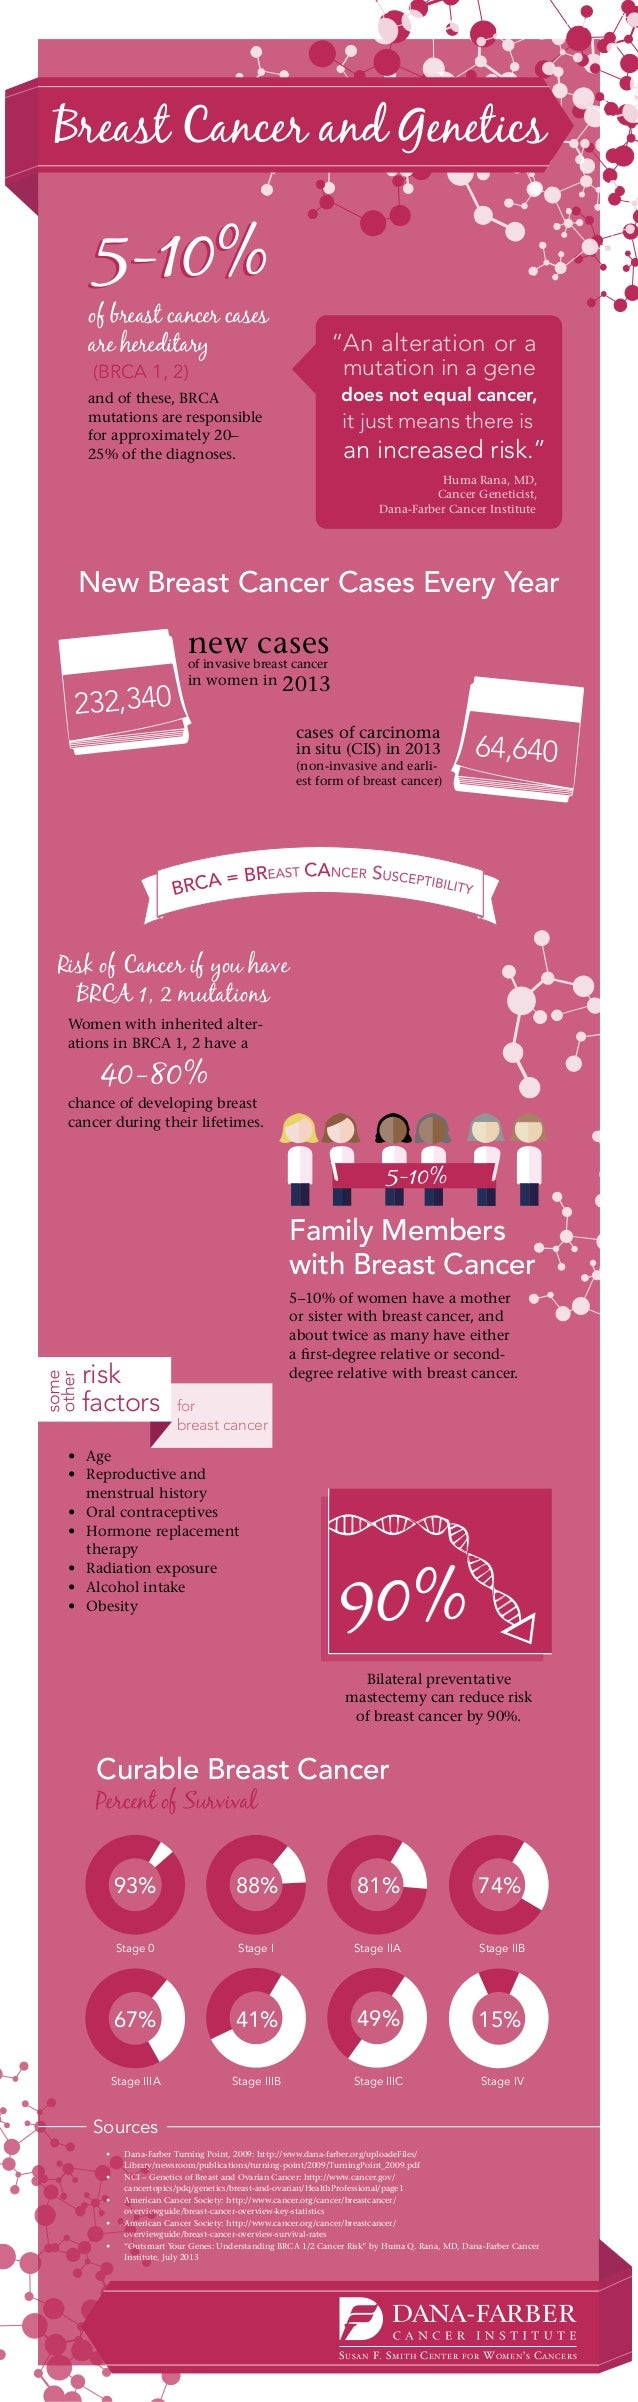 Infographic: Breast Cancer and Genetics